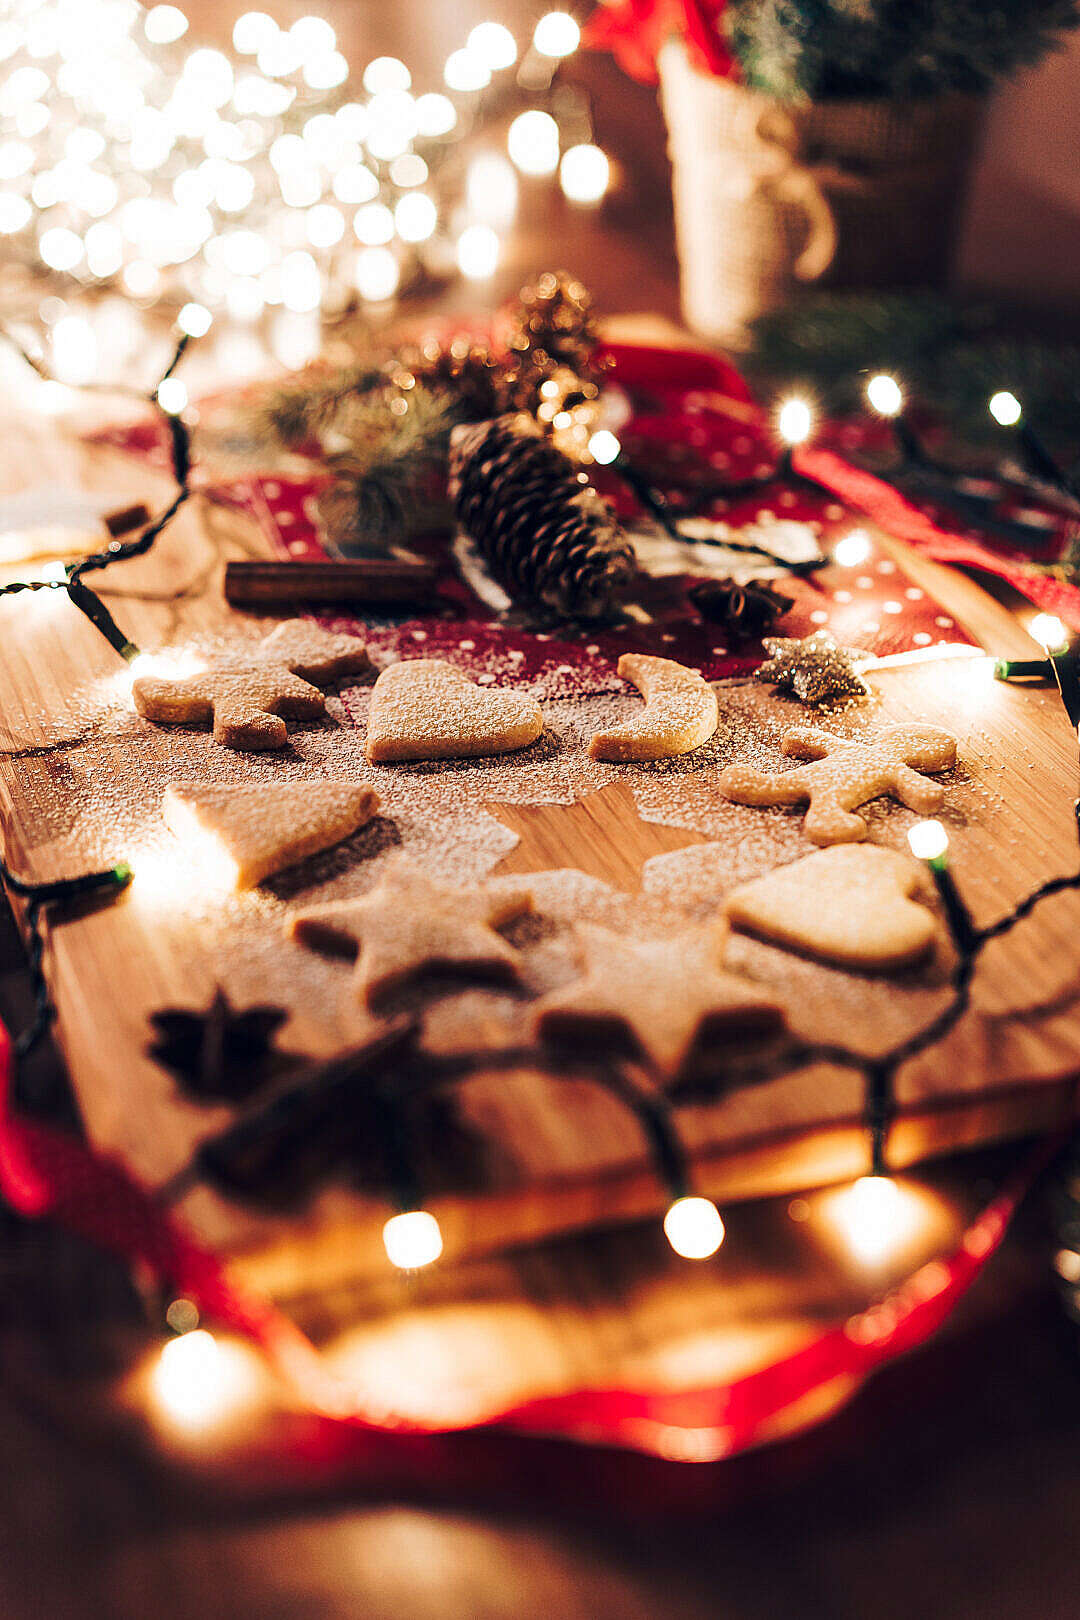 Download Gingerbread Biscuits on Christmas Evening FREE Stock Photo